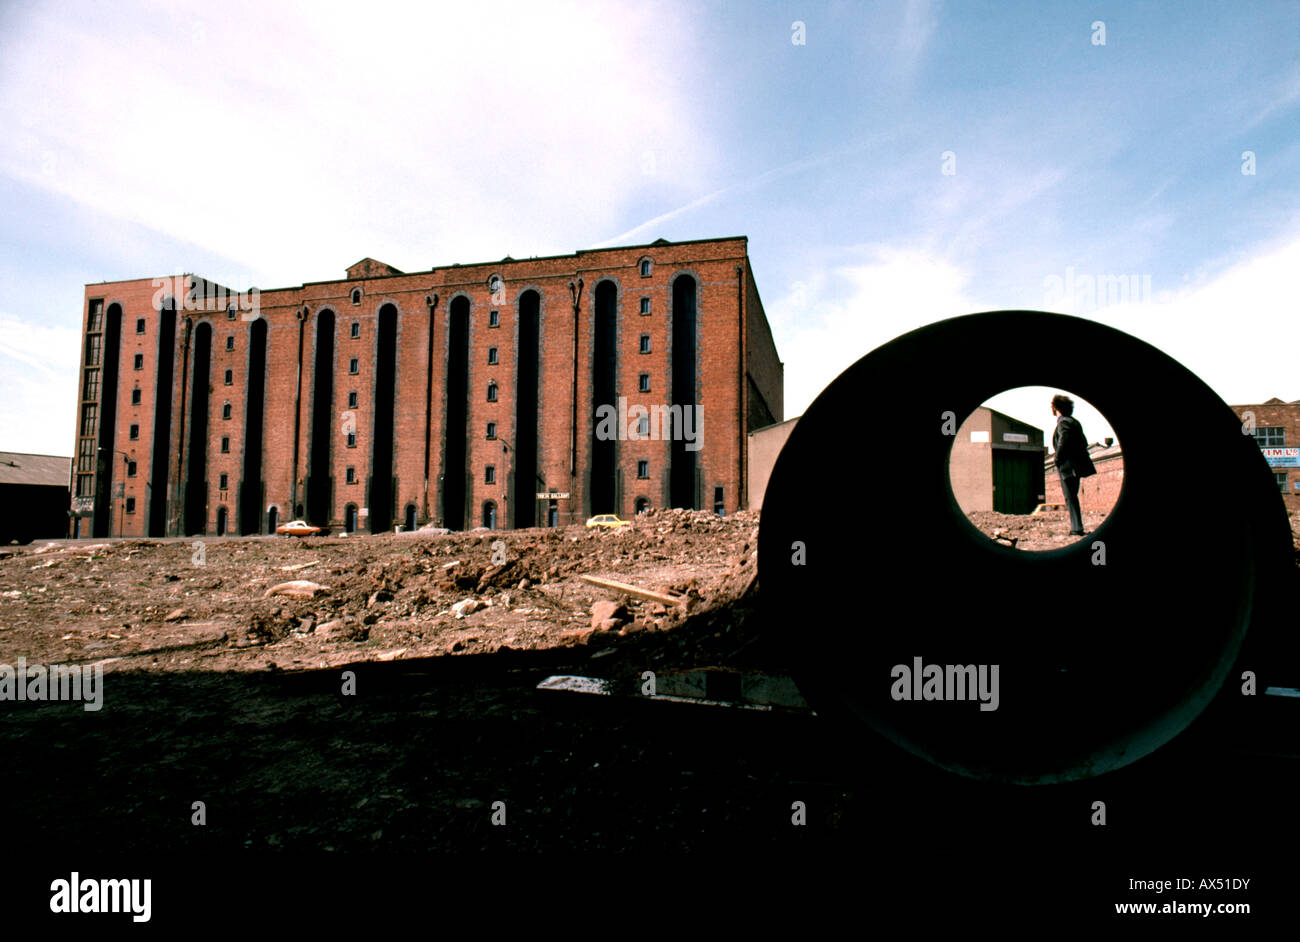 Liverpool docks building in 1980s before redevelopment - Stock Image